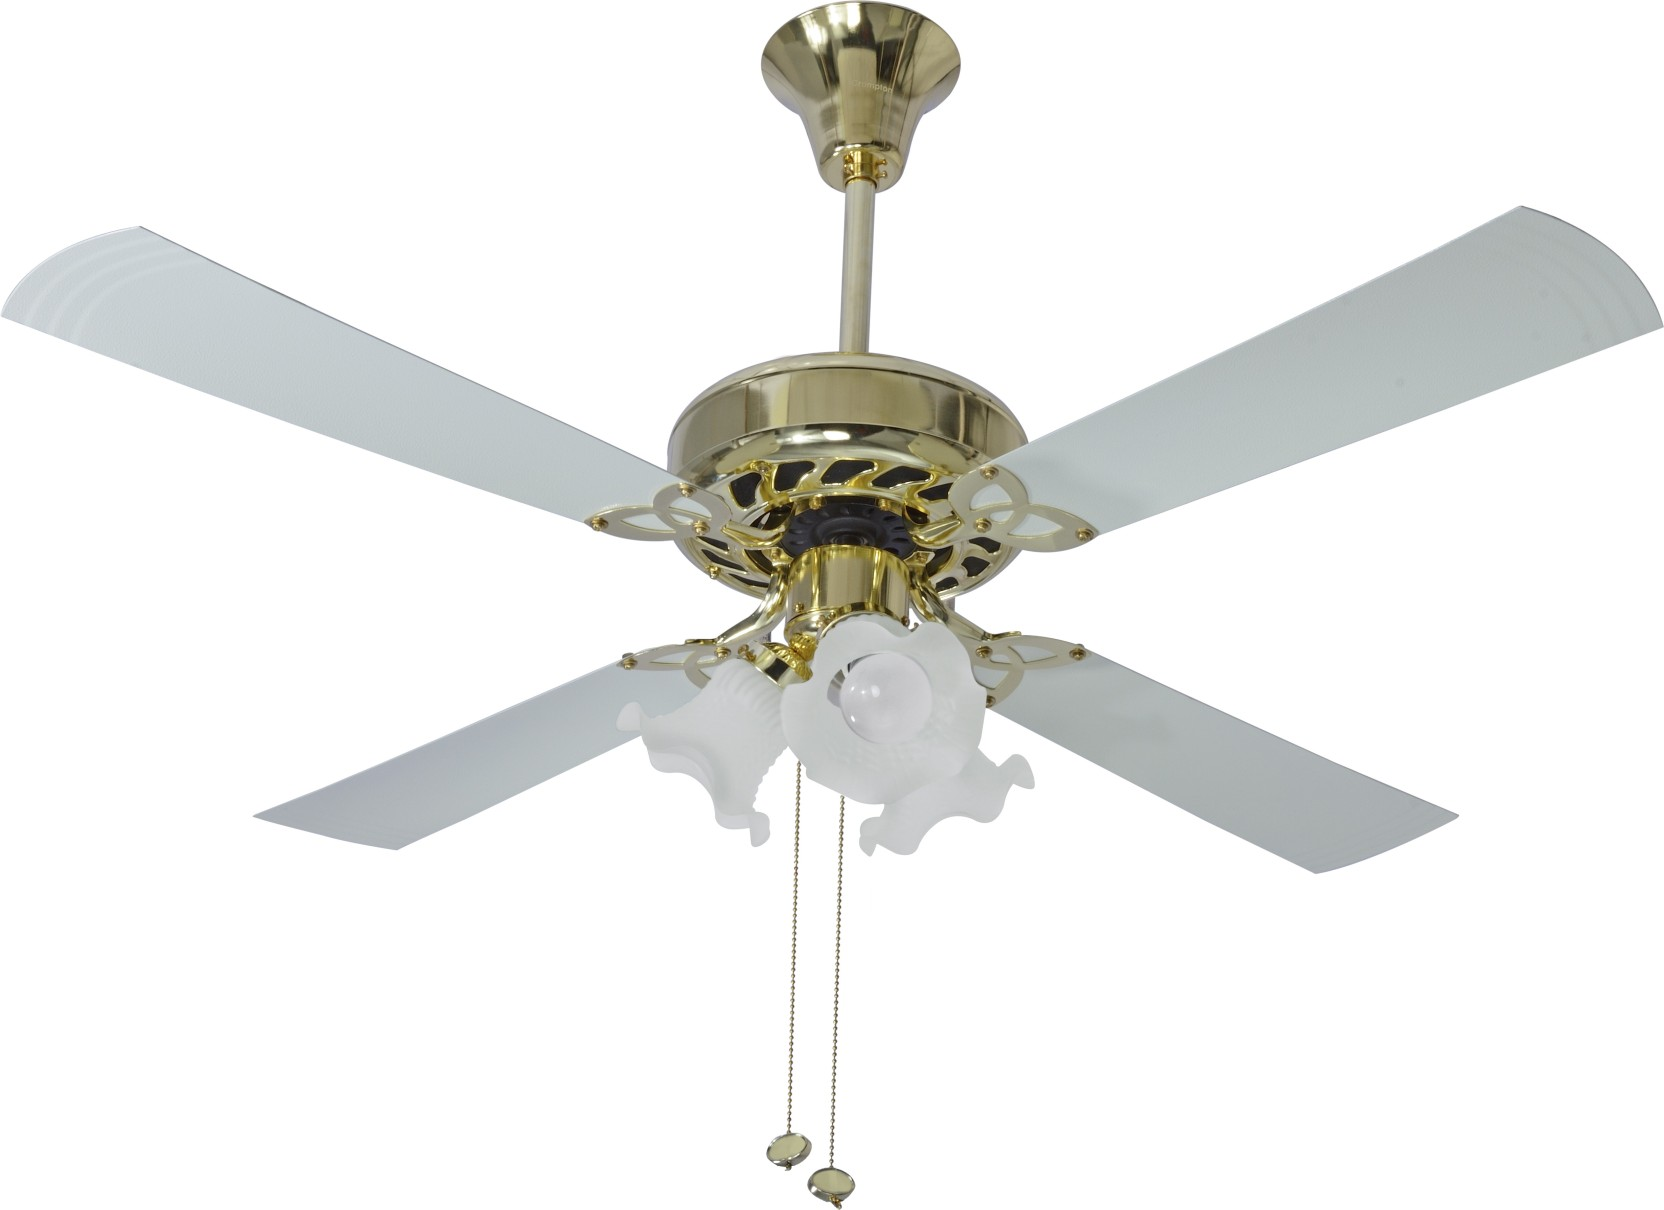 Crompton Uranus1200ivy 4 Blade Ceiling Fan Price In India Buy Google On 3 Wires And Wiring A Without Light Add To Cart